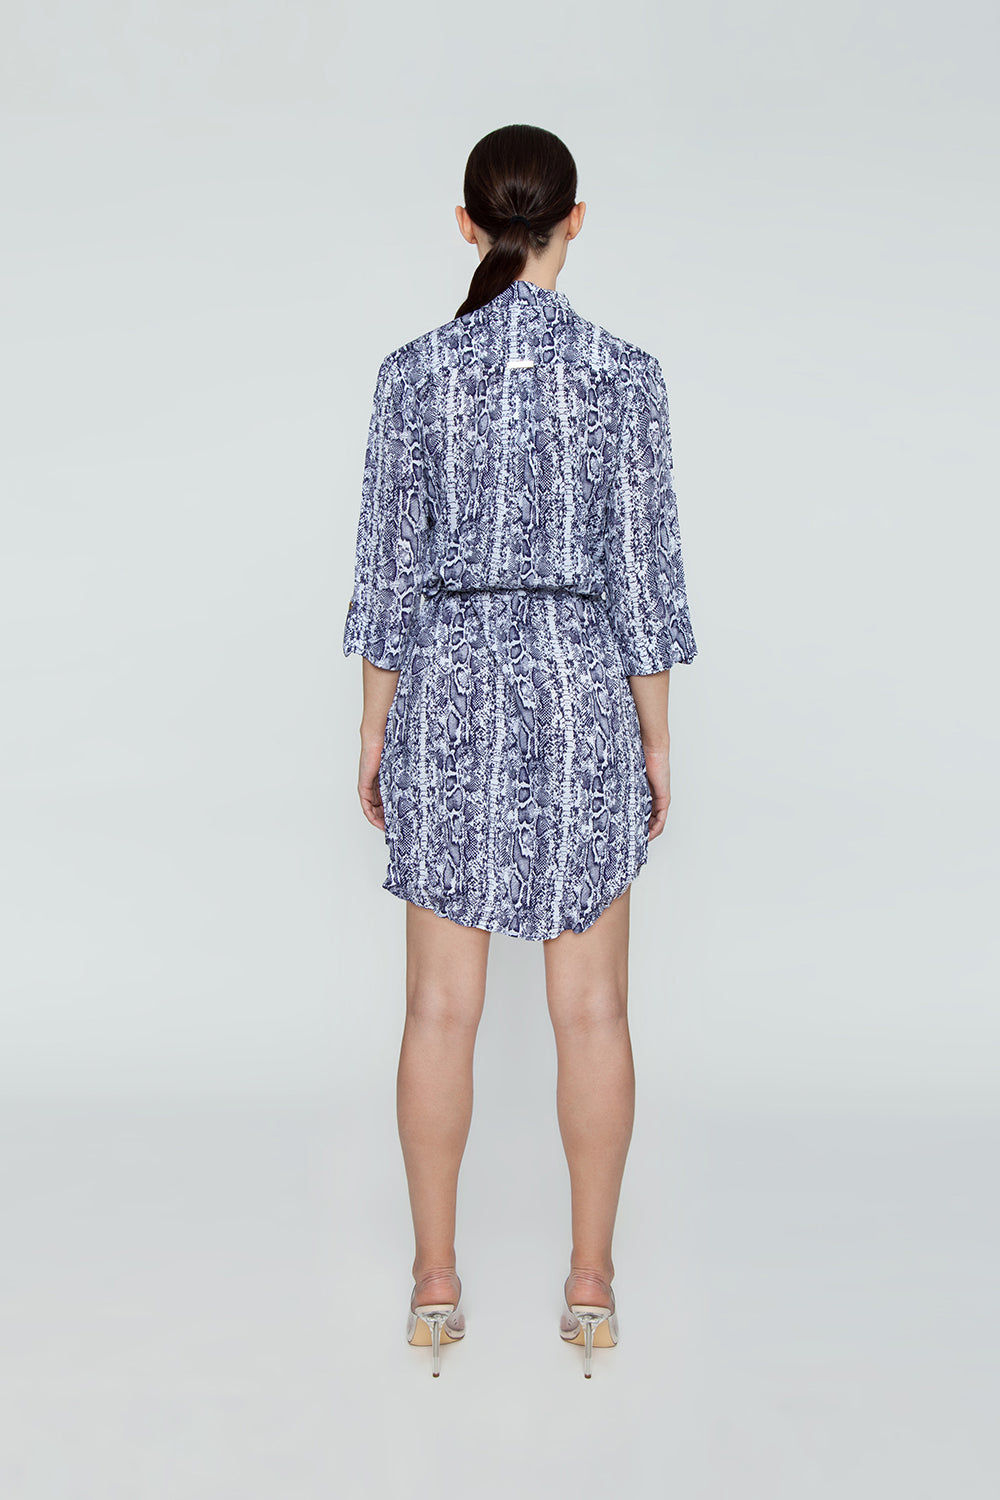 HEIDI KLEIN Relaxed Button Up Shirt Mini Dress - Blue Animal Print Dress | Blue Animal Print| Relaxed Button Up Shirt Mini Dress - Blue Animal Print Features:  A rounded hem that dips at the back and a drawstring for an adjustable fit and a flattering silhouette. Neat fitting on the shoulders with slightly shaped side seams.   Sleeves can be worn long or tacked up with sleeve tabs for versatility. Back View